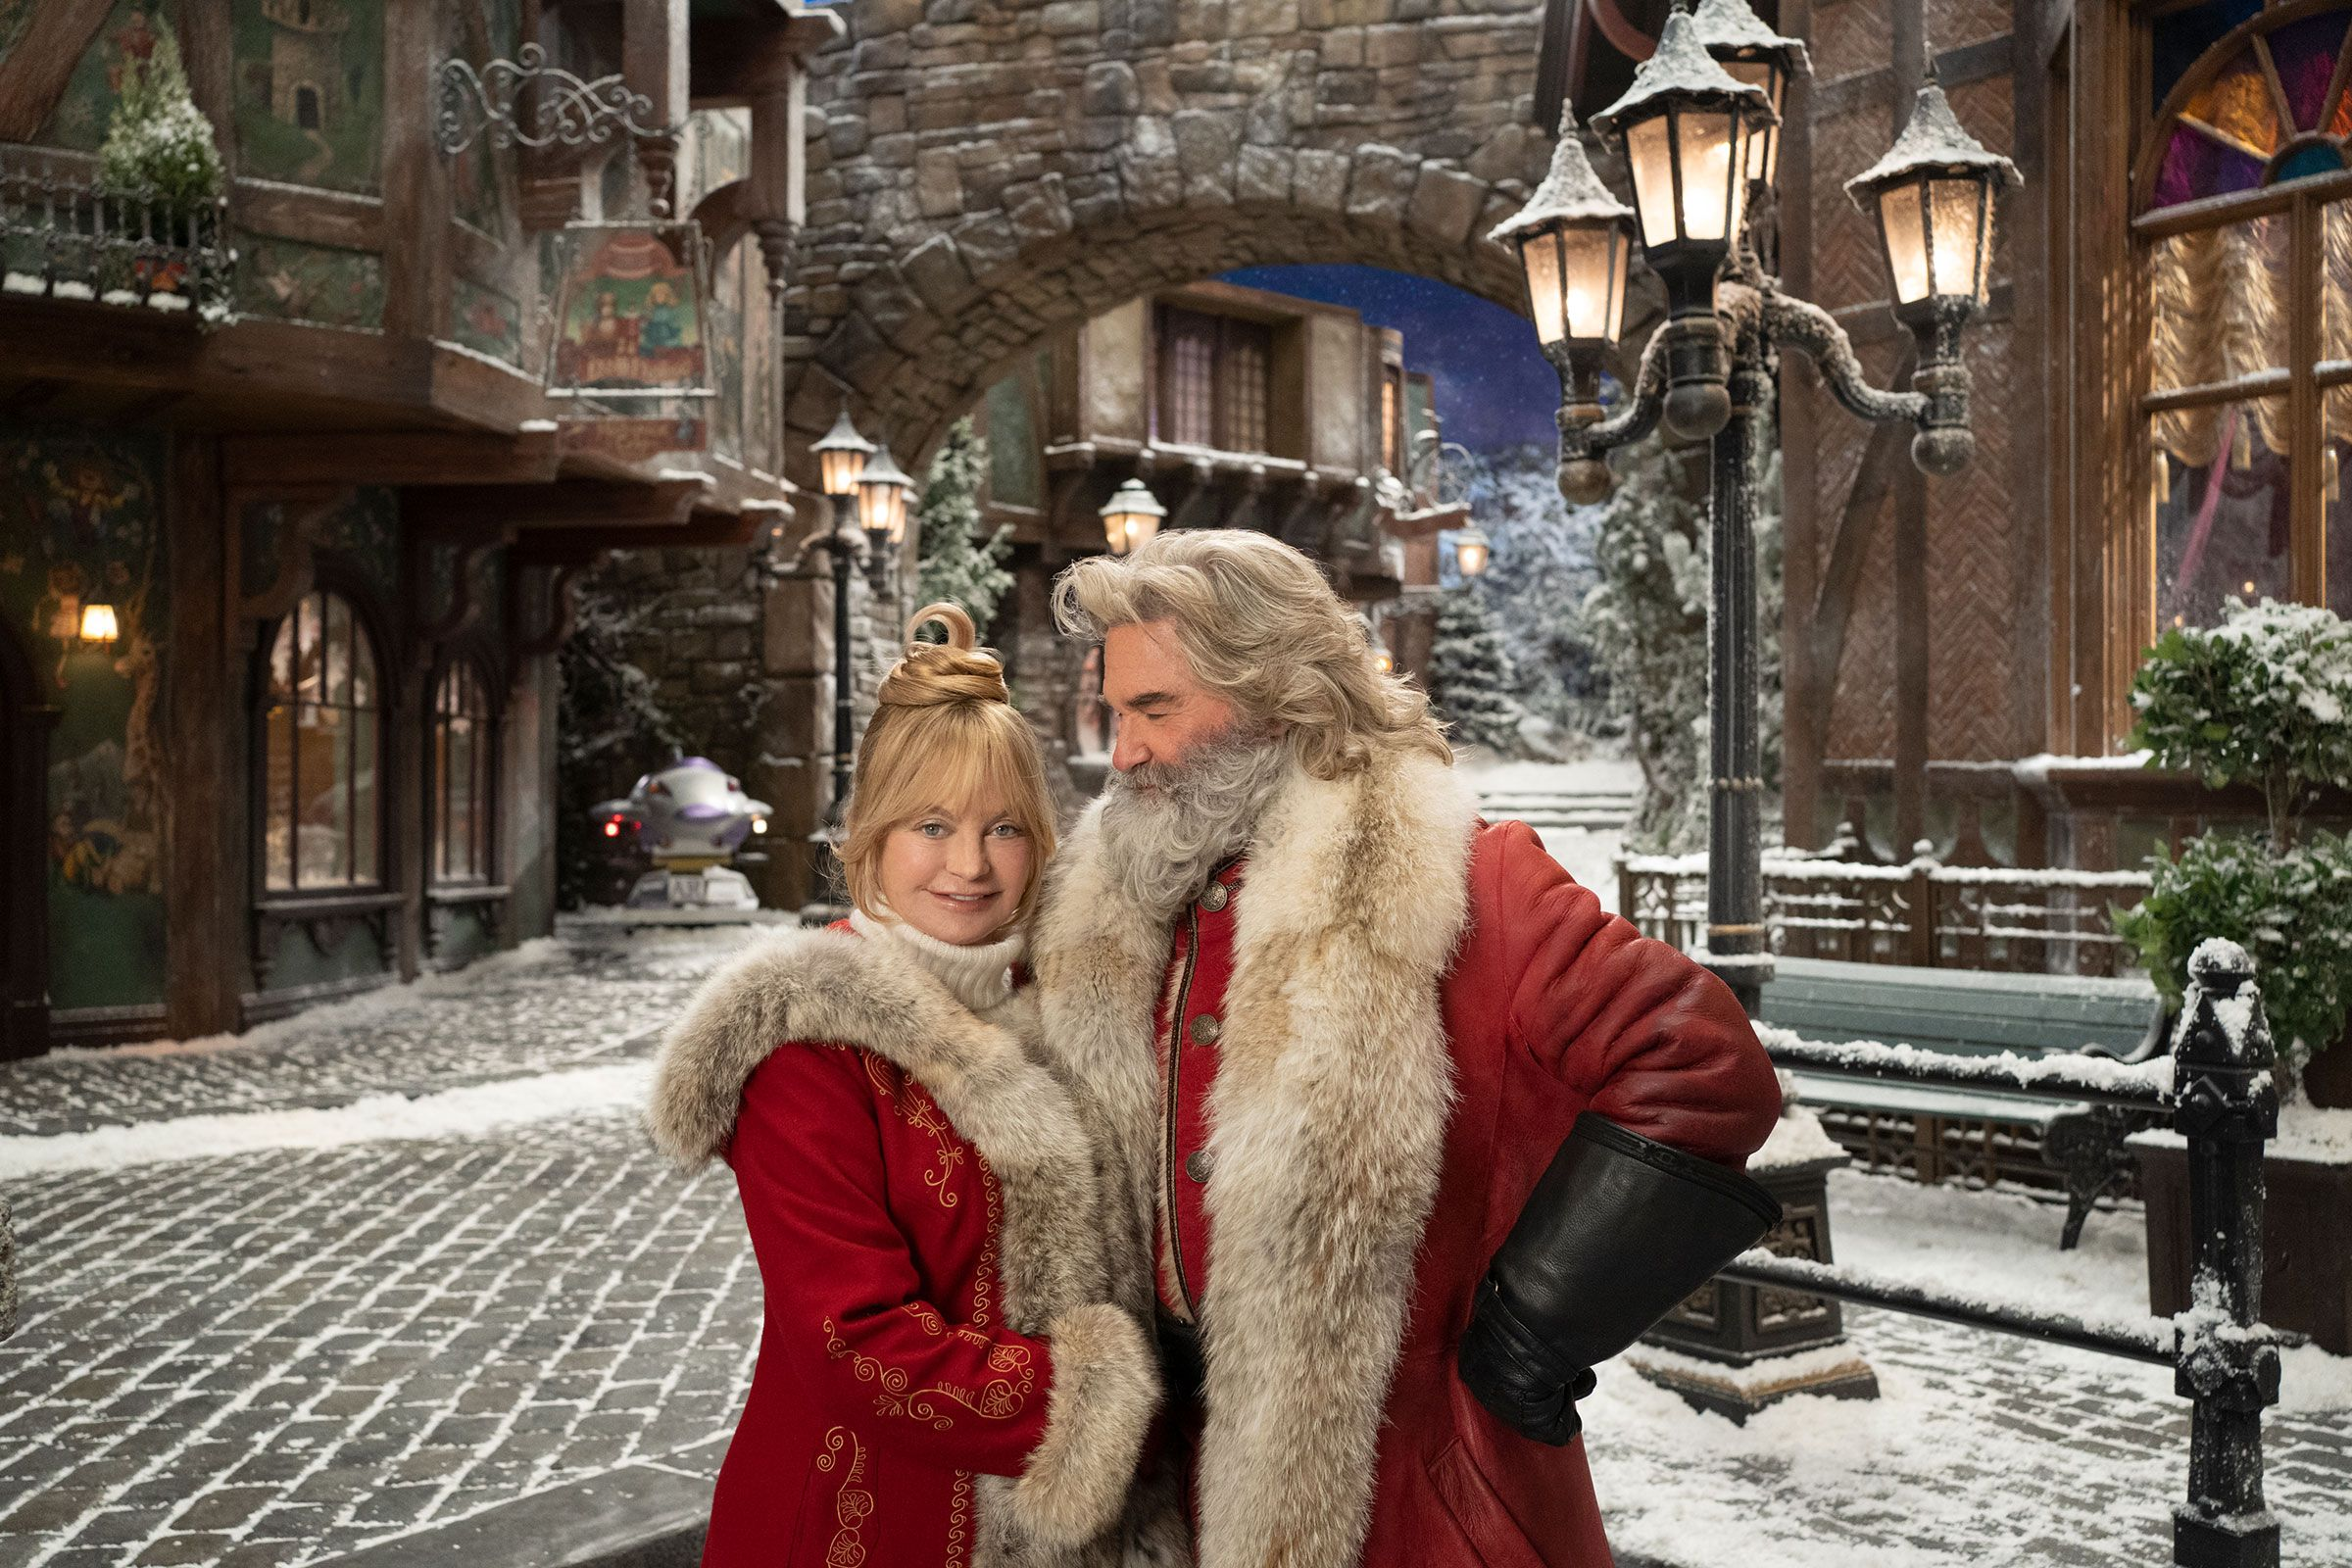 The Christmas Chronicles 2 With Kurt Russell Goldie Hawn Set For Holiday 2020 Goldie Hawn Kurt Russell Goldie Hawn Kurt Russell